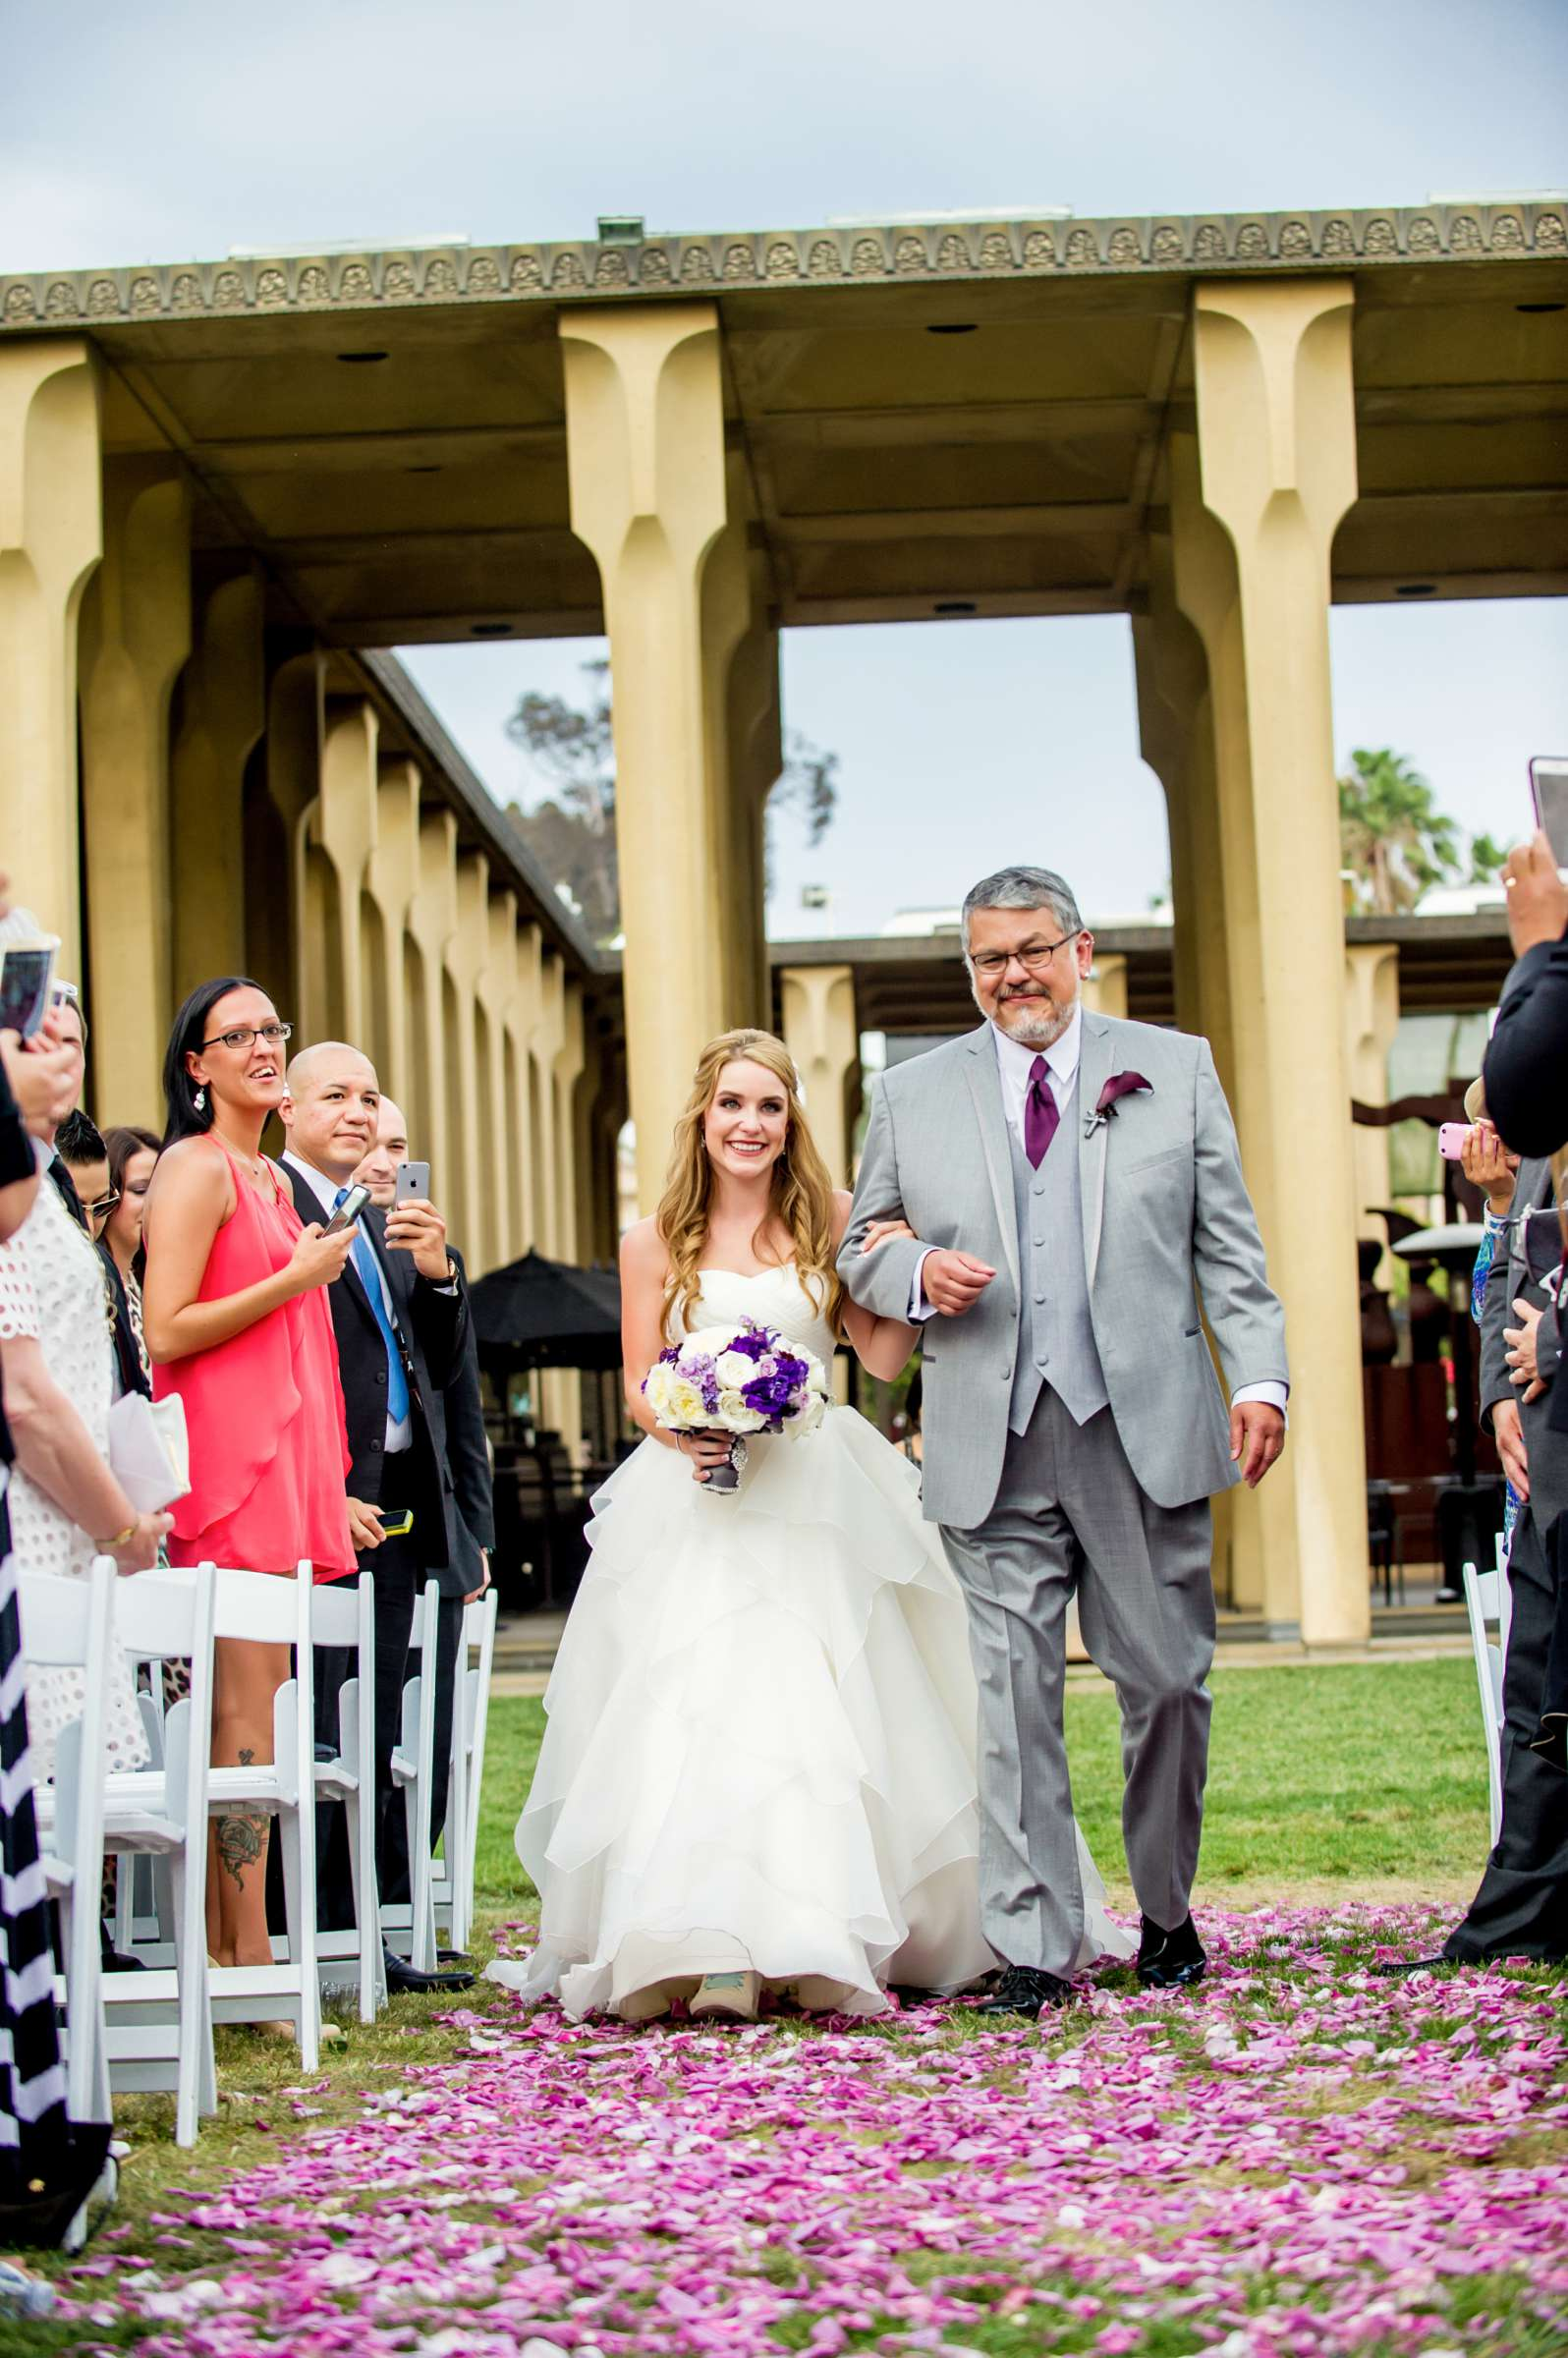 The Prado Wedding coordinated by Victoria Weddings & Events, Melissa and Andrew Wedding Photo #64 by True Photography